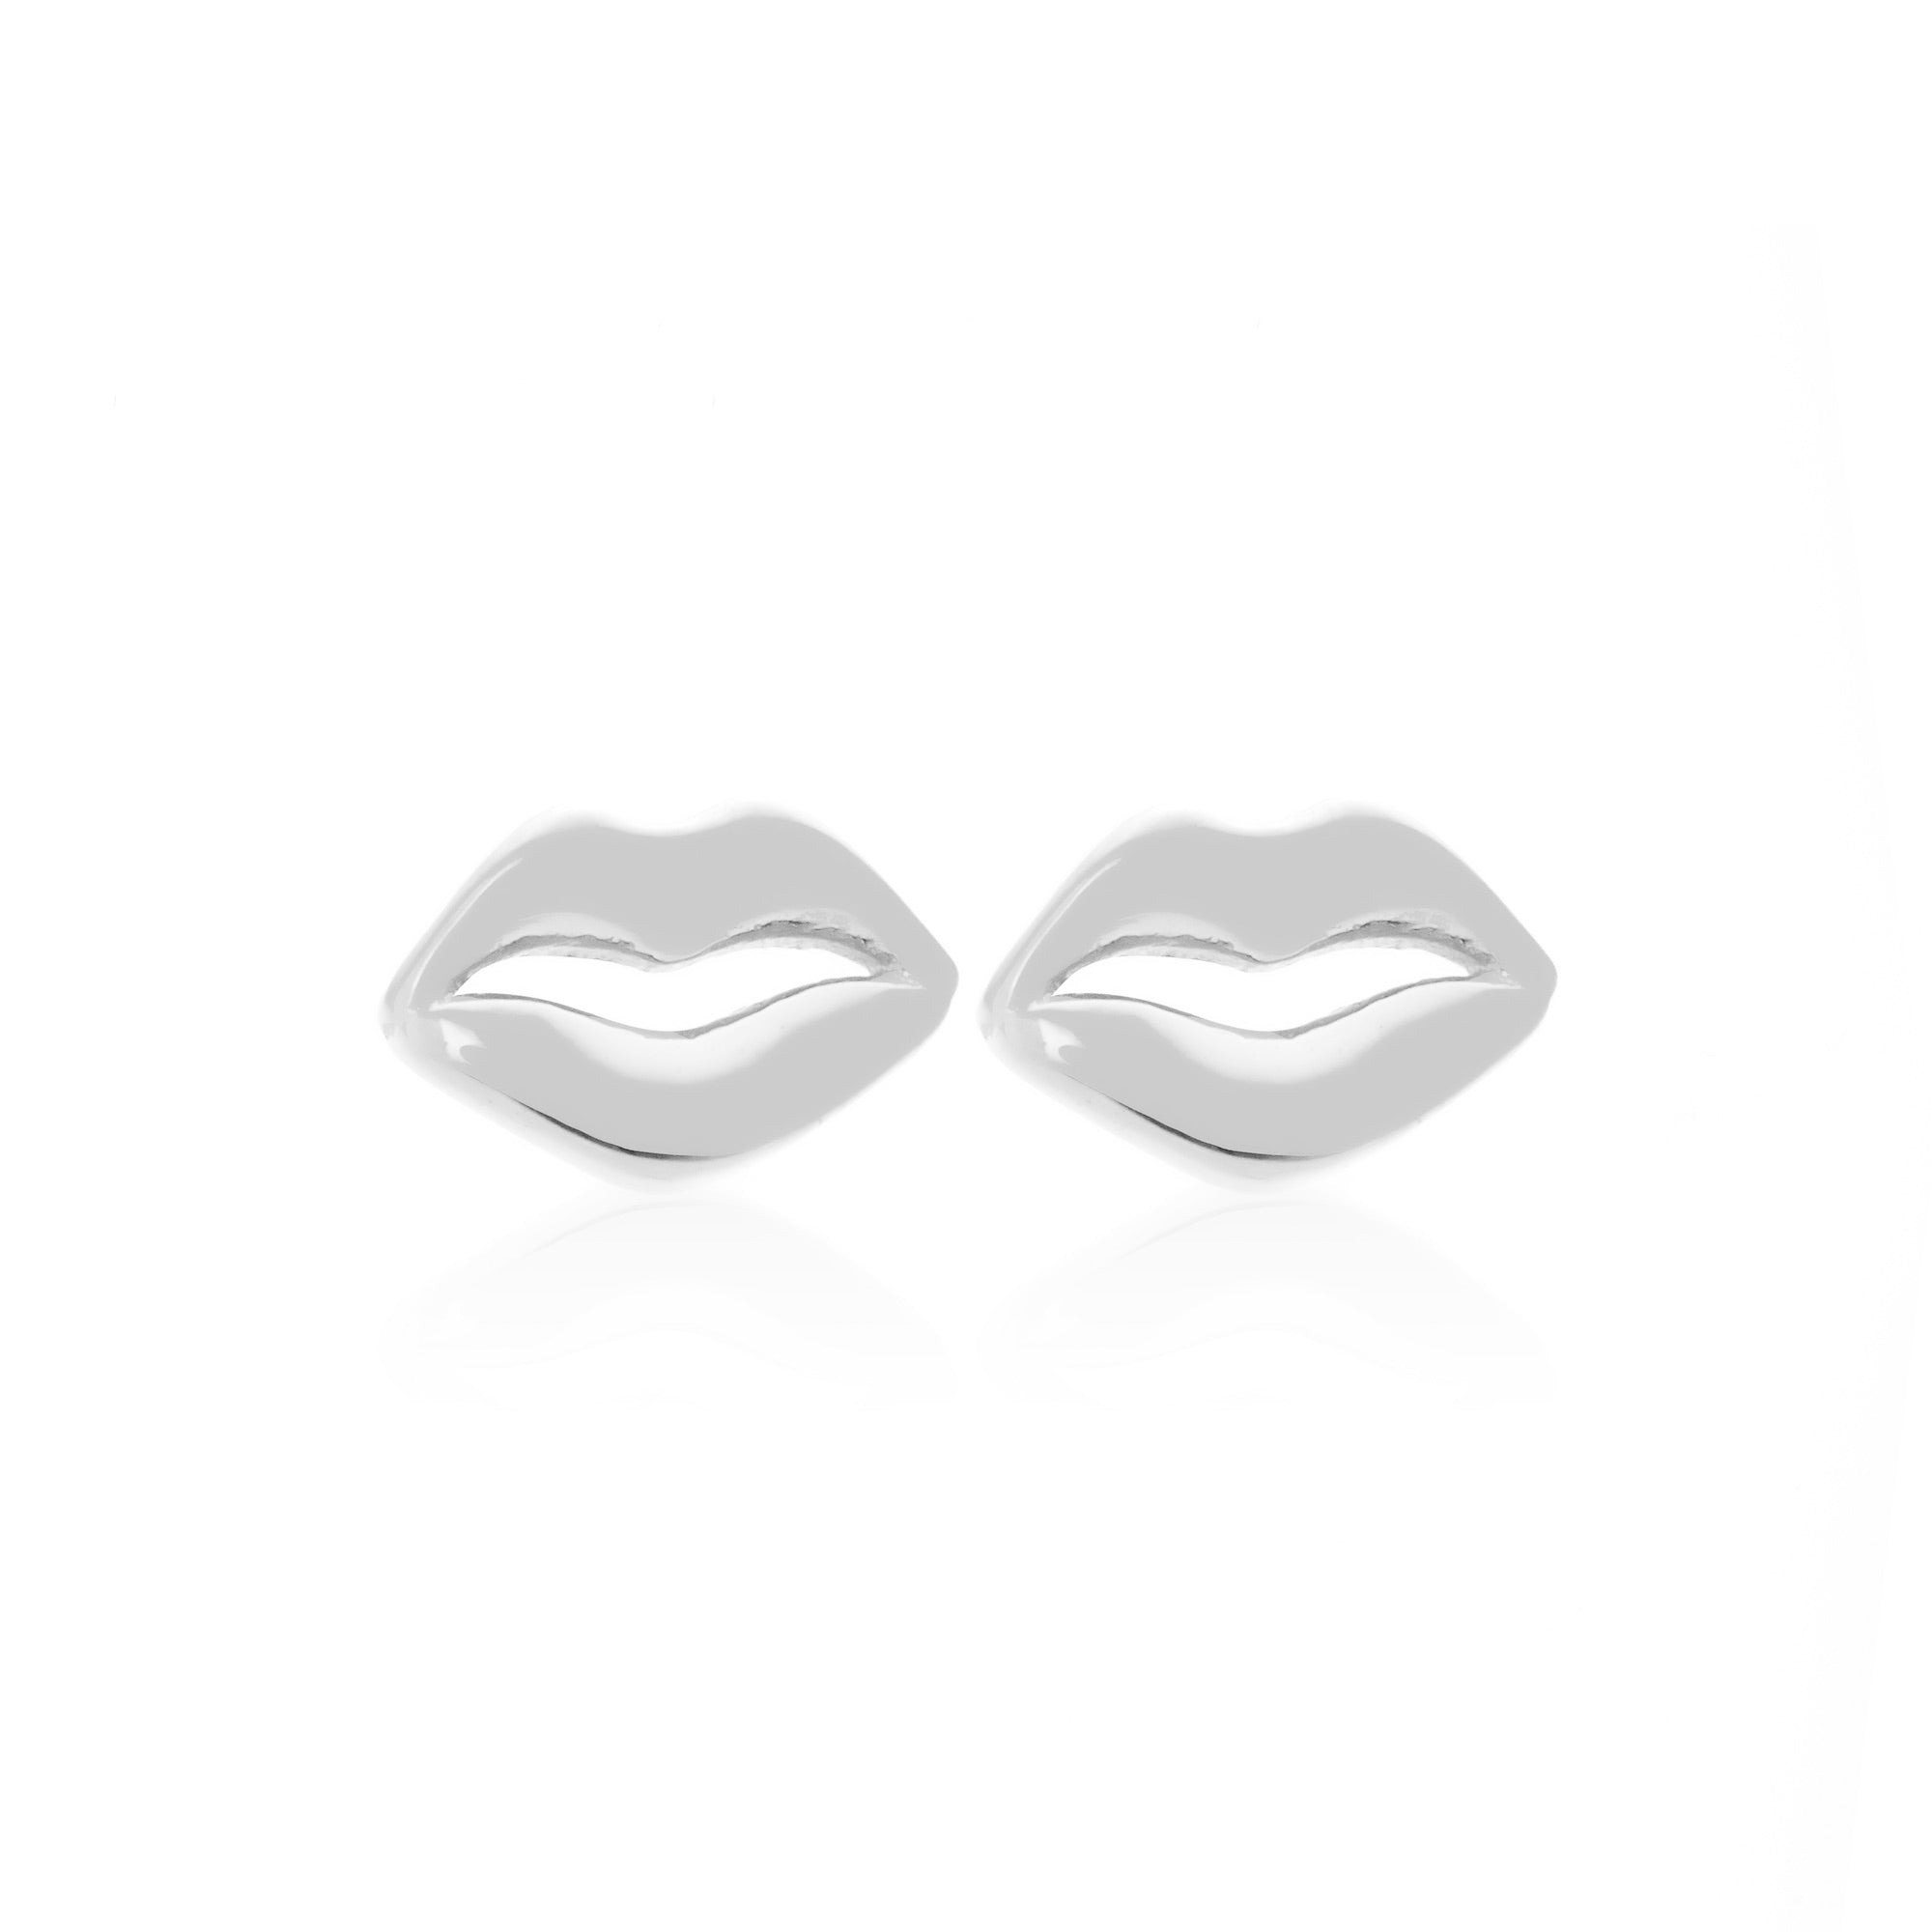 Silk & Steel Jewellery Superfine Kiss Me Sterling Silver Stud Earrings